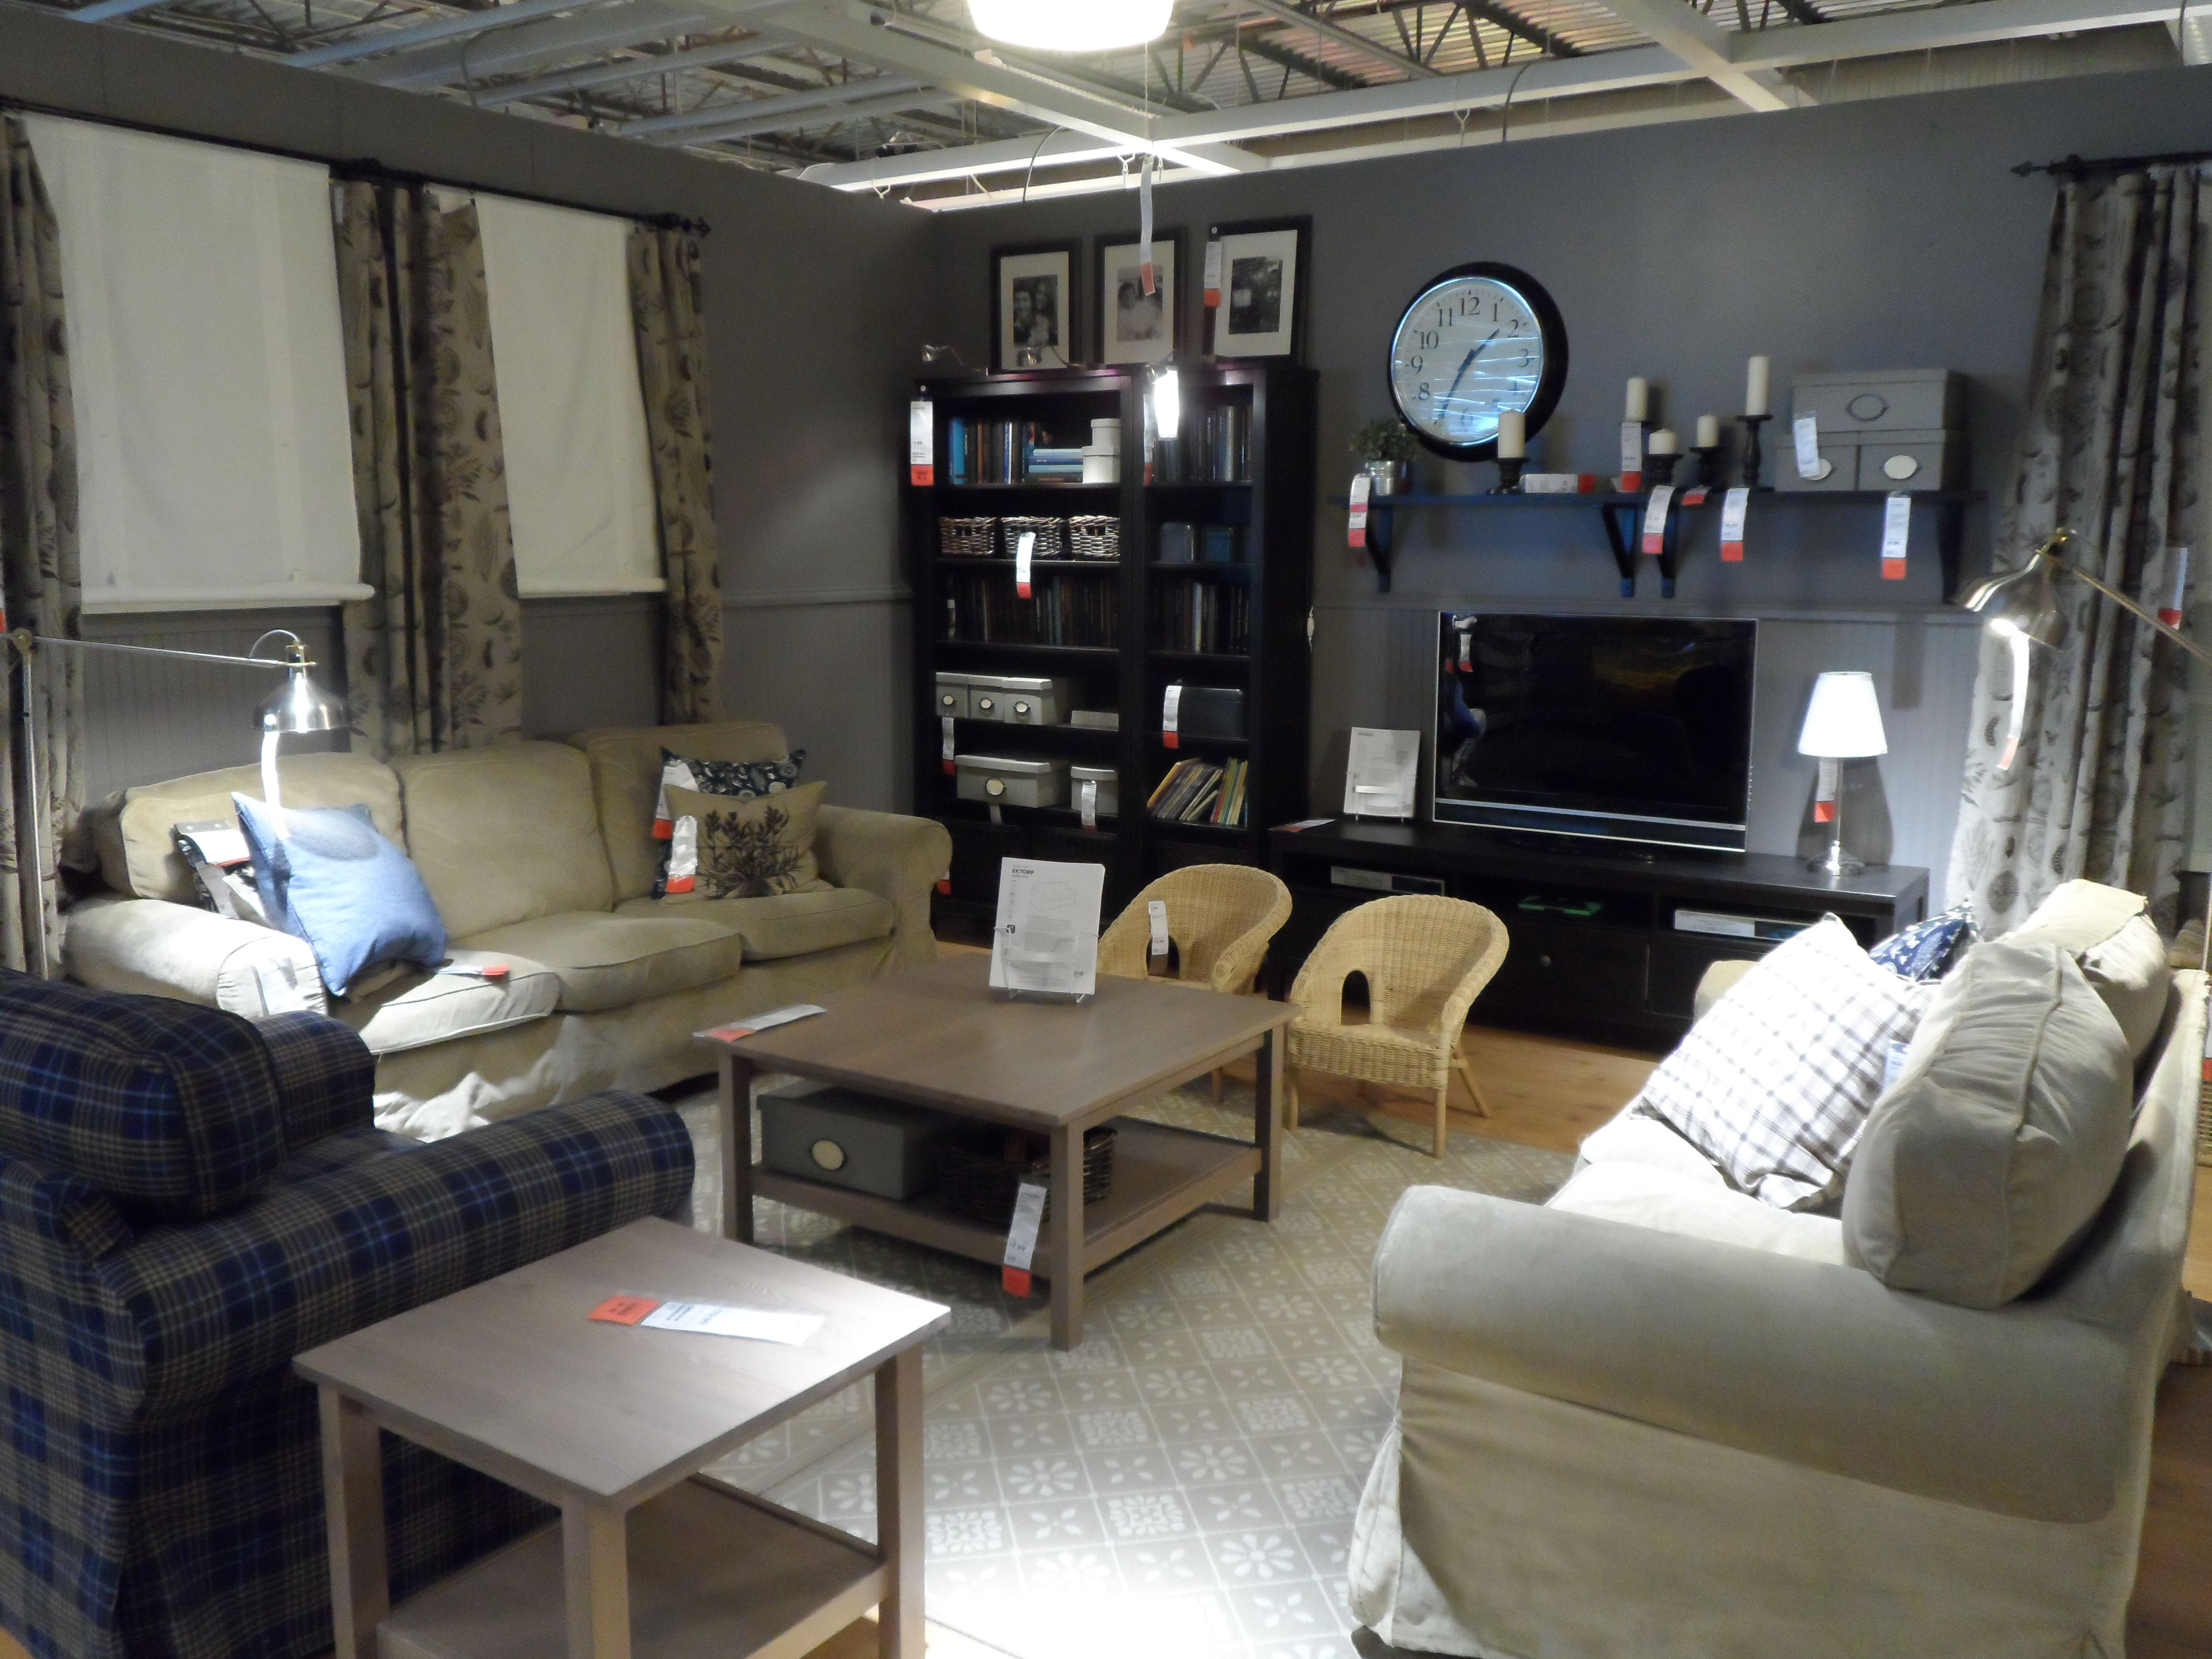 Ikea Showroom Living Room Decorating Long Canton Mi Gray Or Grey Walls Shopping